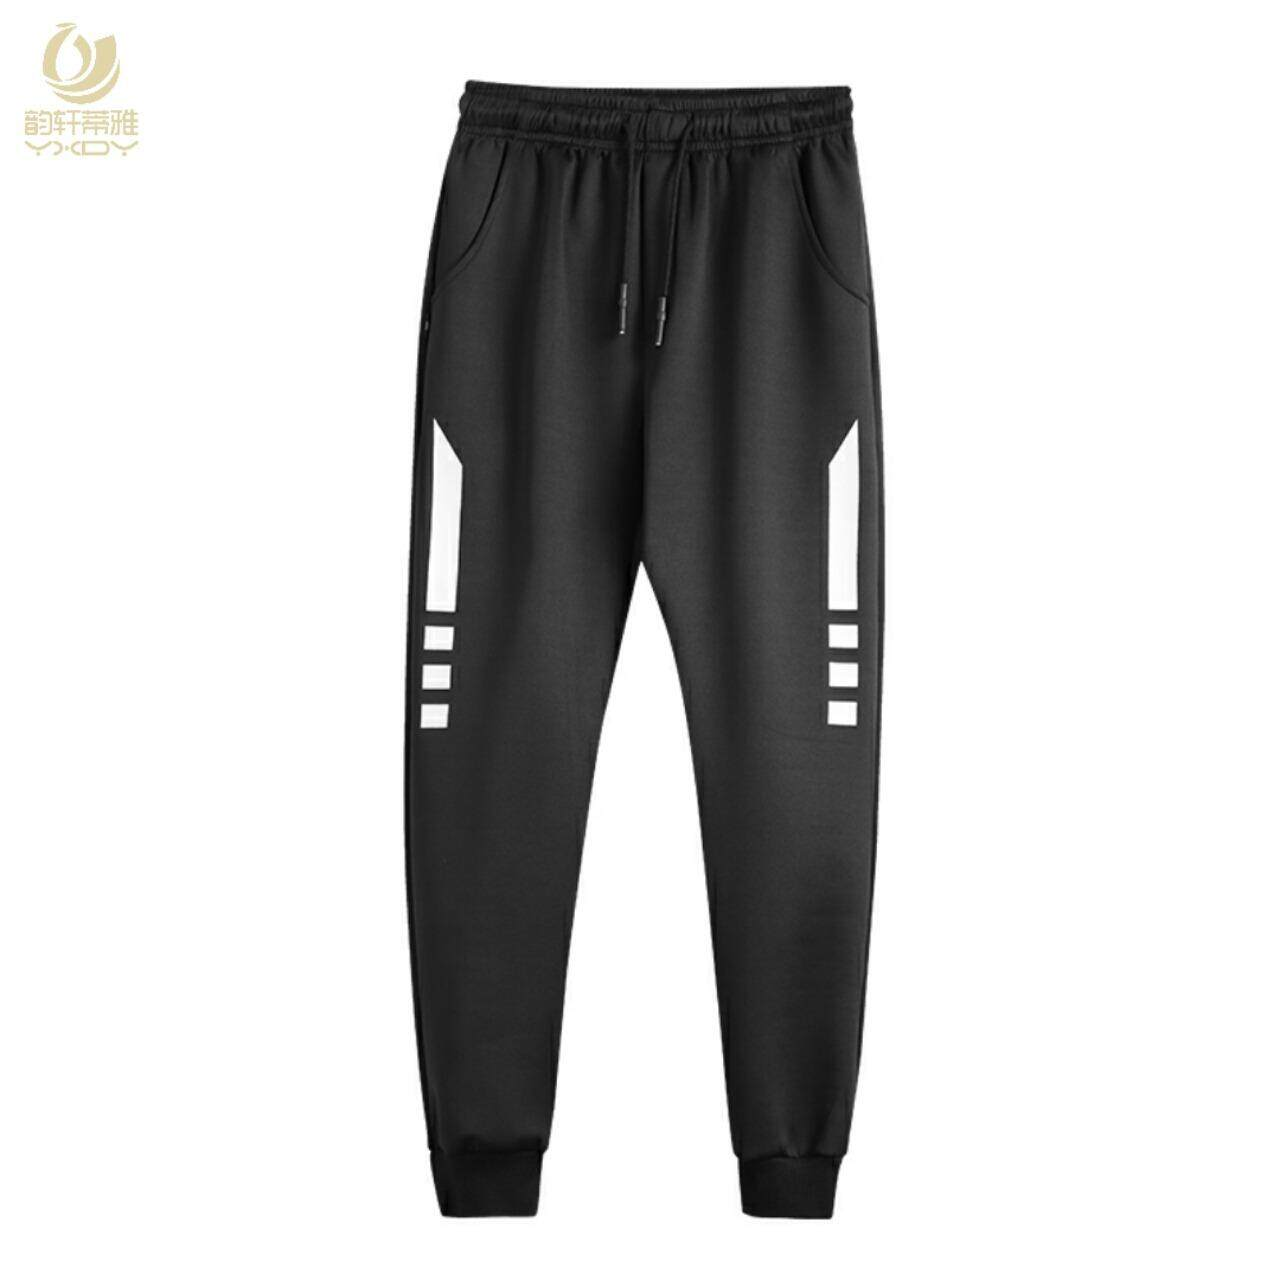 2018 New Men's Harem Pants Casual Sports Pants Loose Trousers Badminton Pants